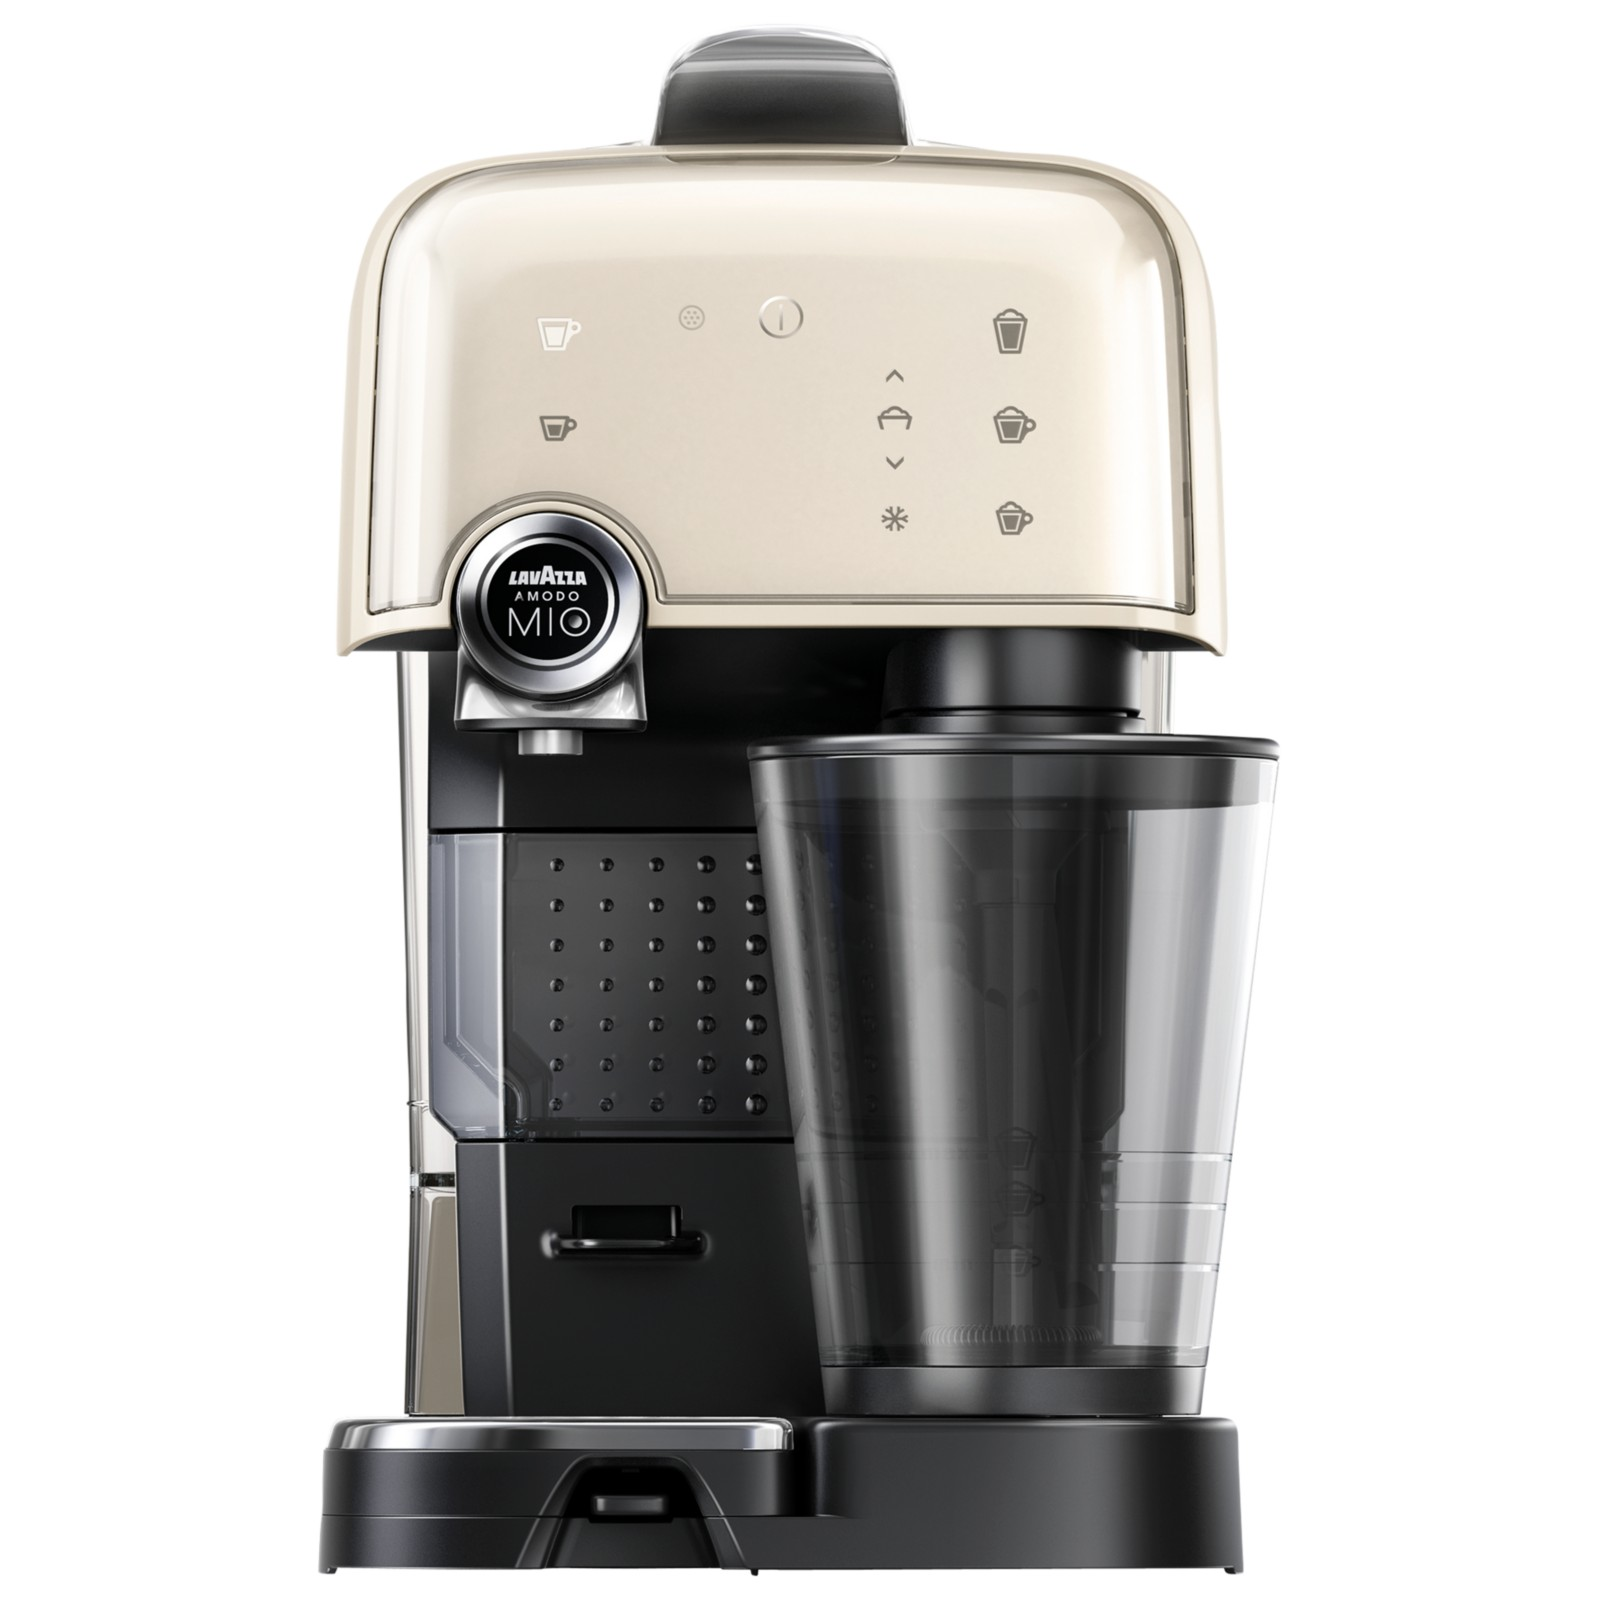 Coffee Maker Latte Reviews : Lavazza A Modo Mio Fantasia LM7000 Cappuccino Latte Coffee Machine Cream Review - Best Buy Review